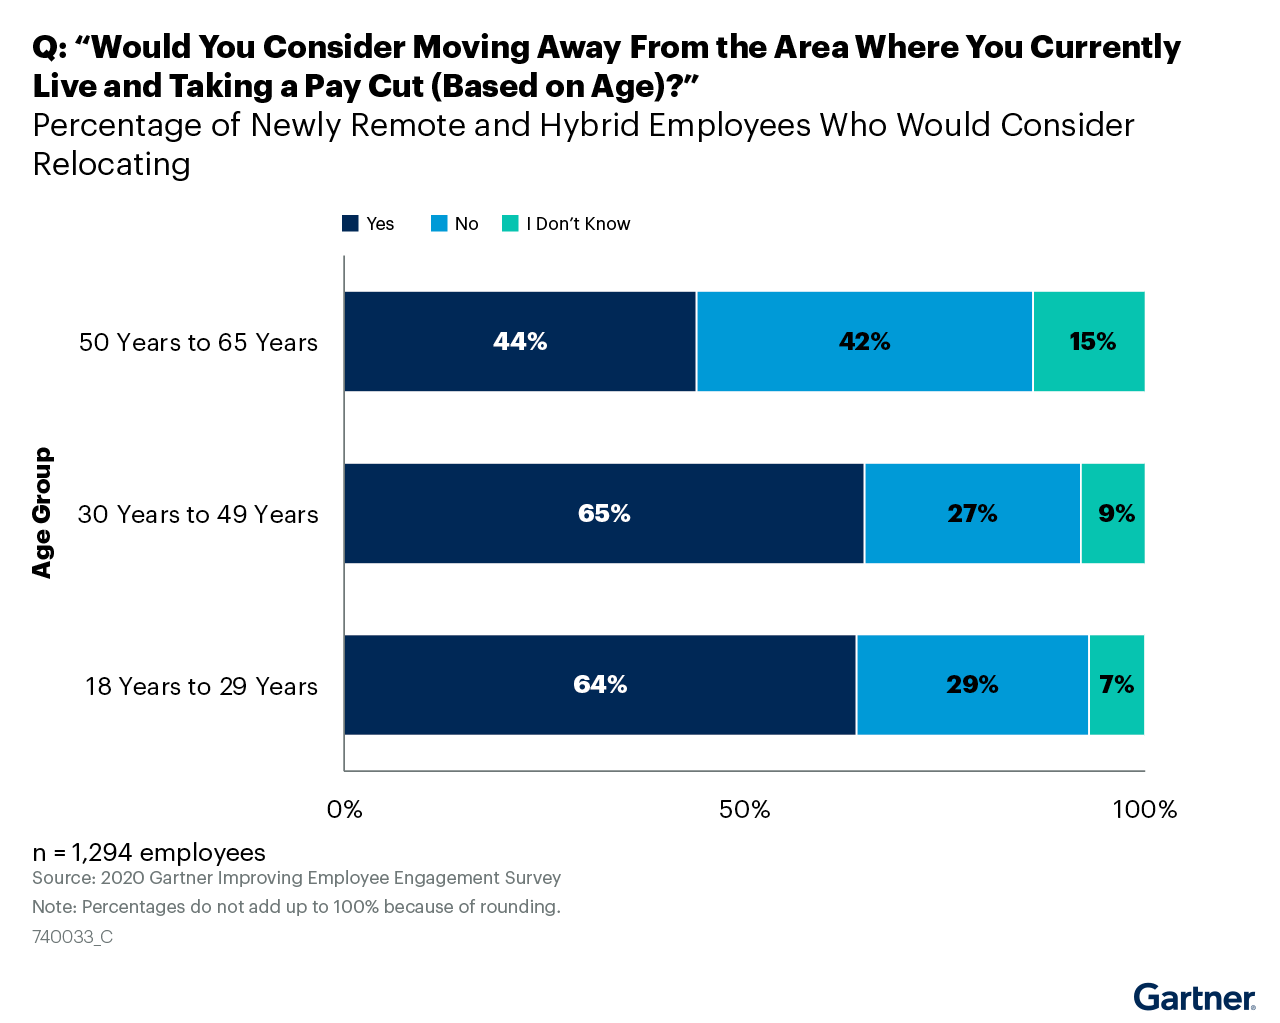 """Figure 3. Q: """"Would You Consider Moving Away From the Area Where You Currently Live and Taking a Pay Cut (Based on Age)?"""""""